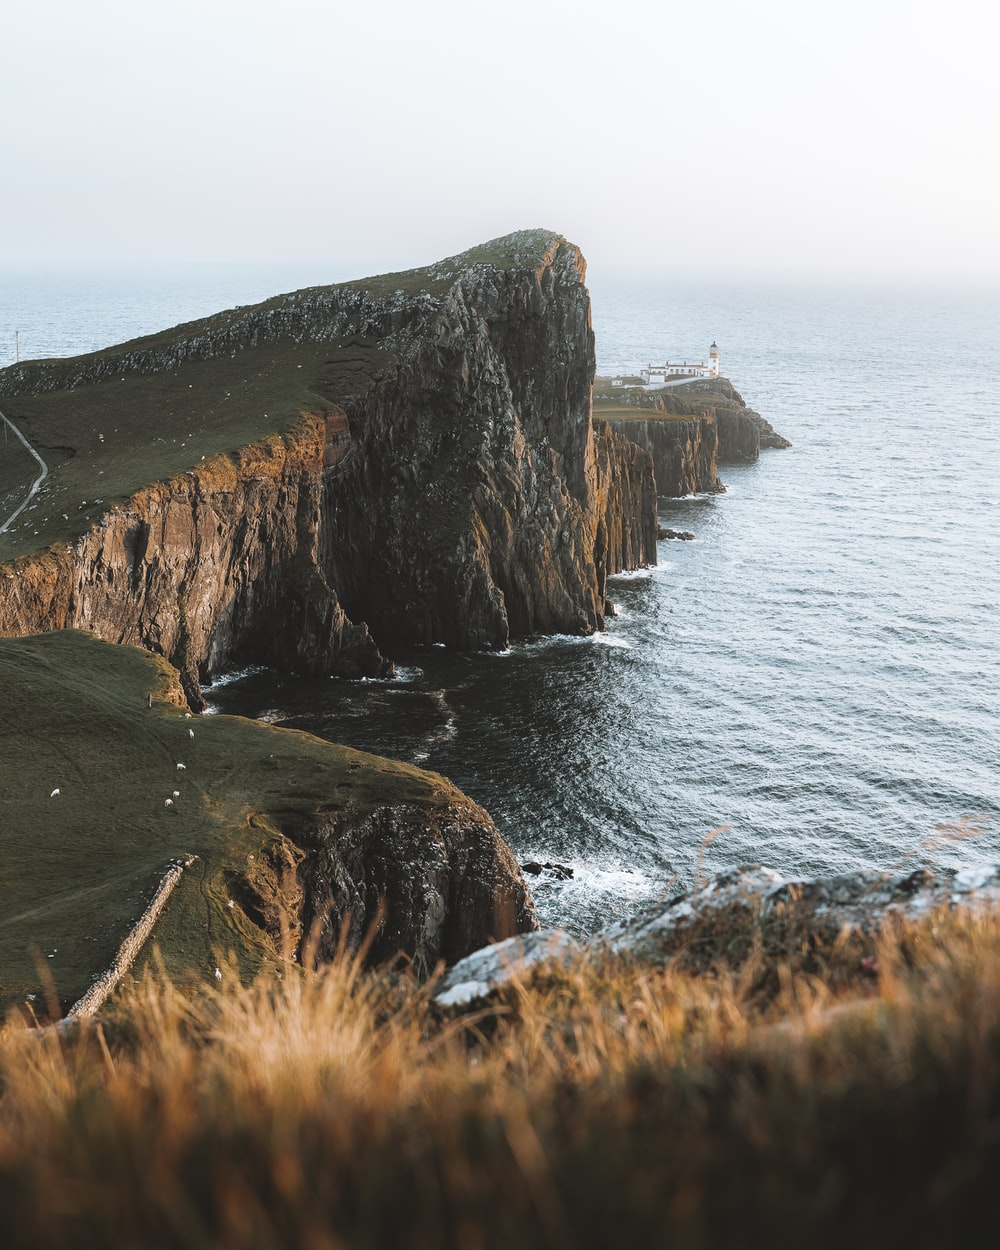 brown and green rock formation beside sea during daytime